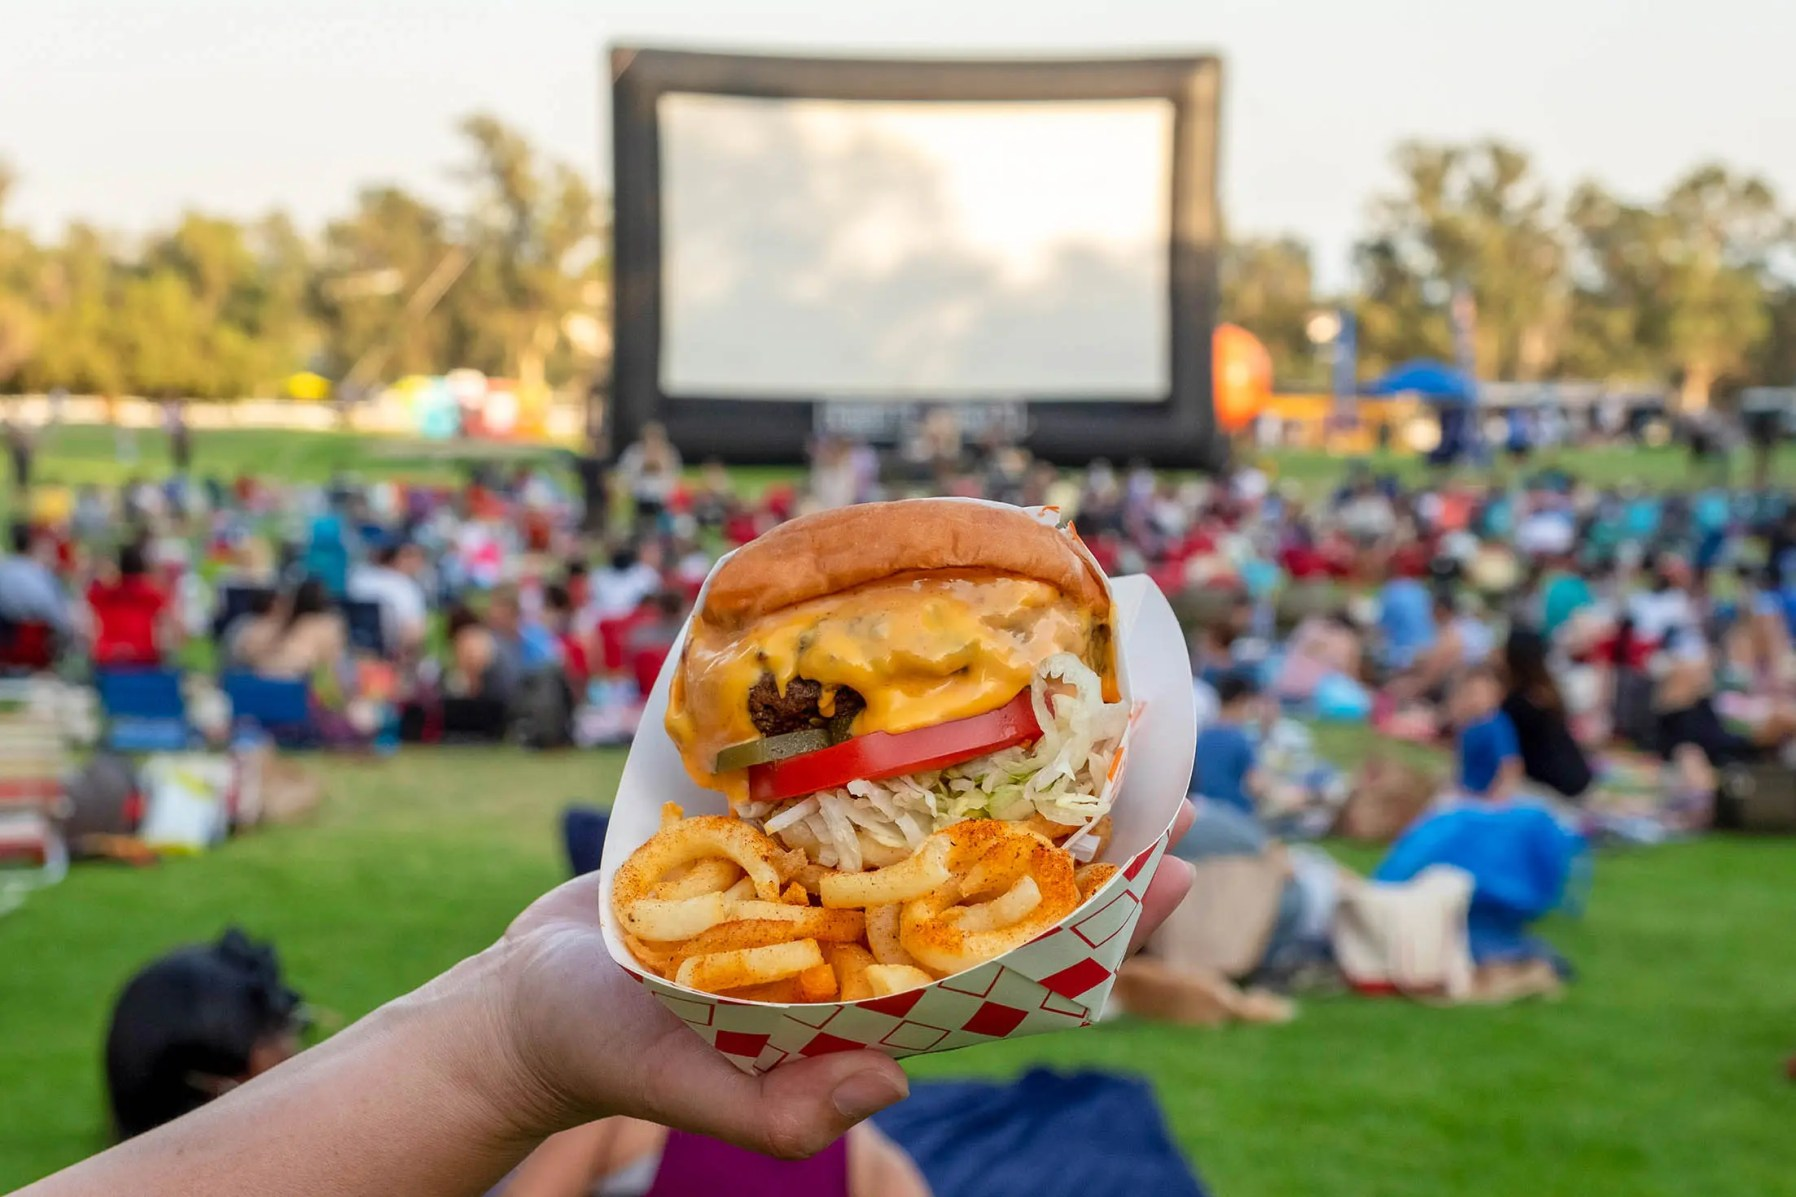 Photography Provided By: ET, Street Food Cinema